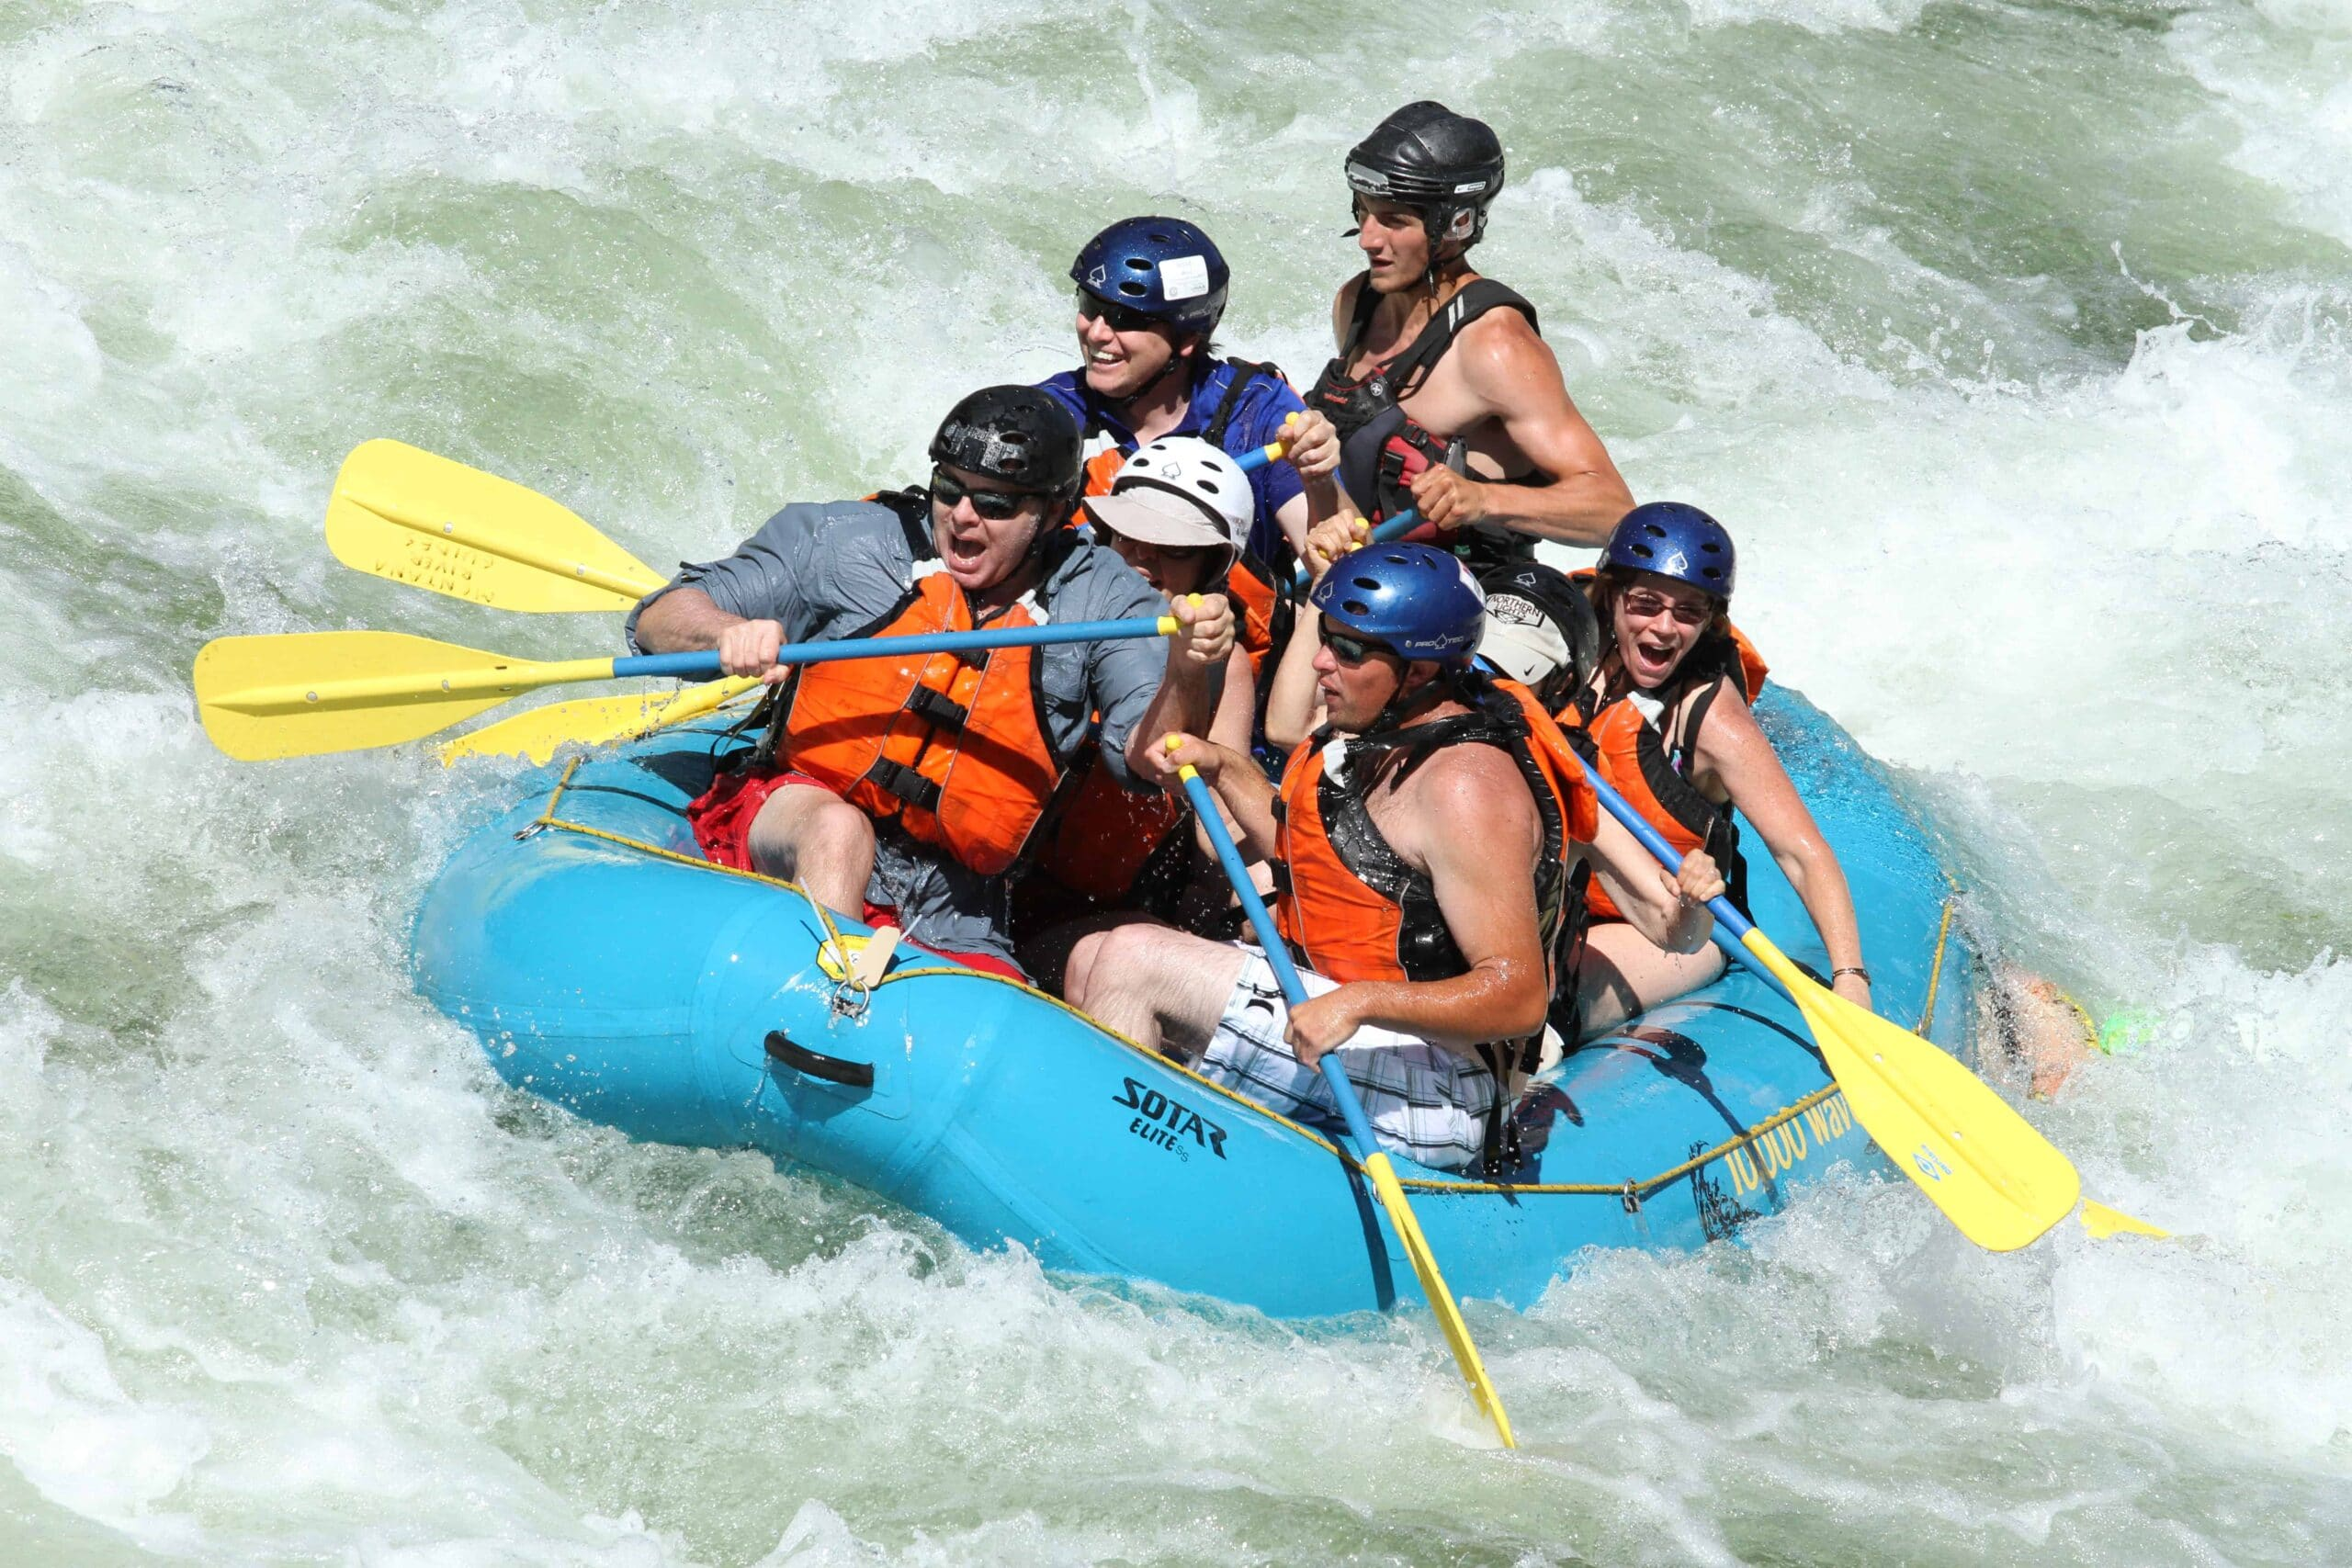 Montana rafting adventure on the Clark Fork River near Missoula